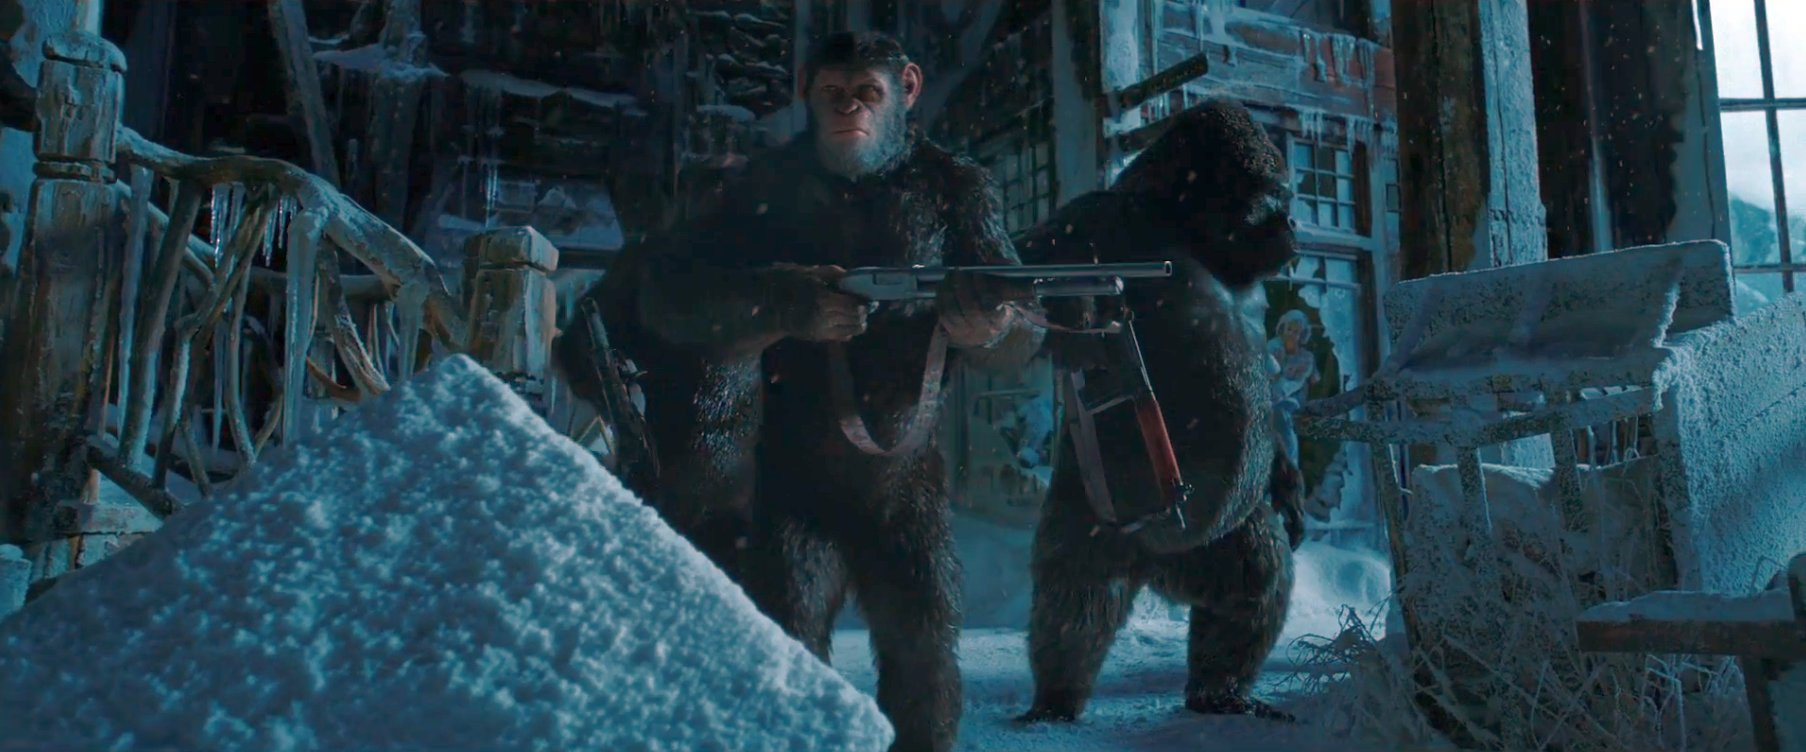 War for the Planet of the Apes Photo